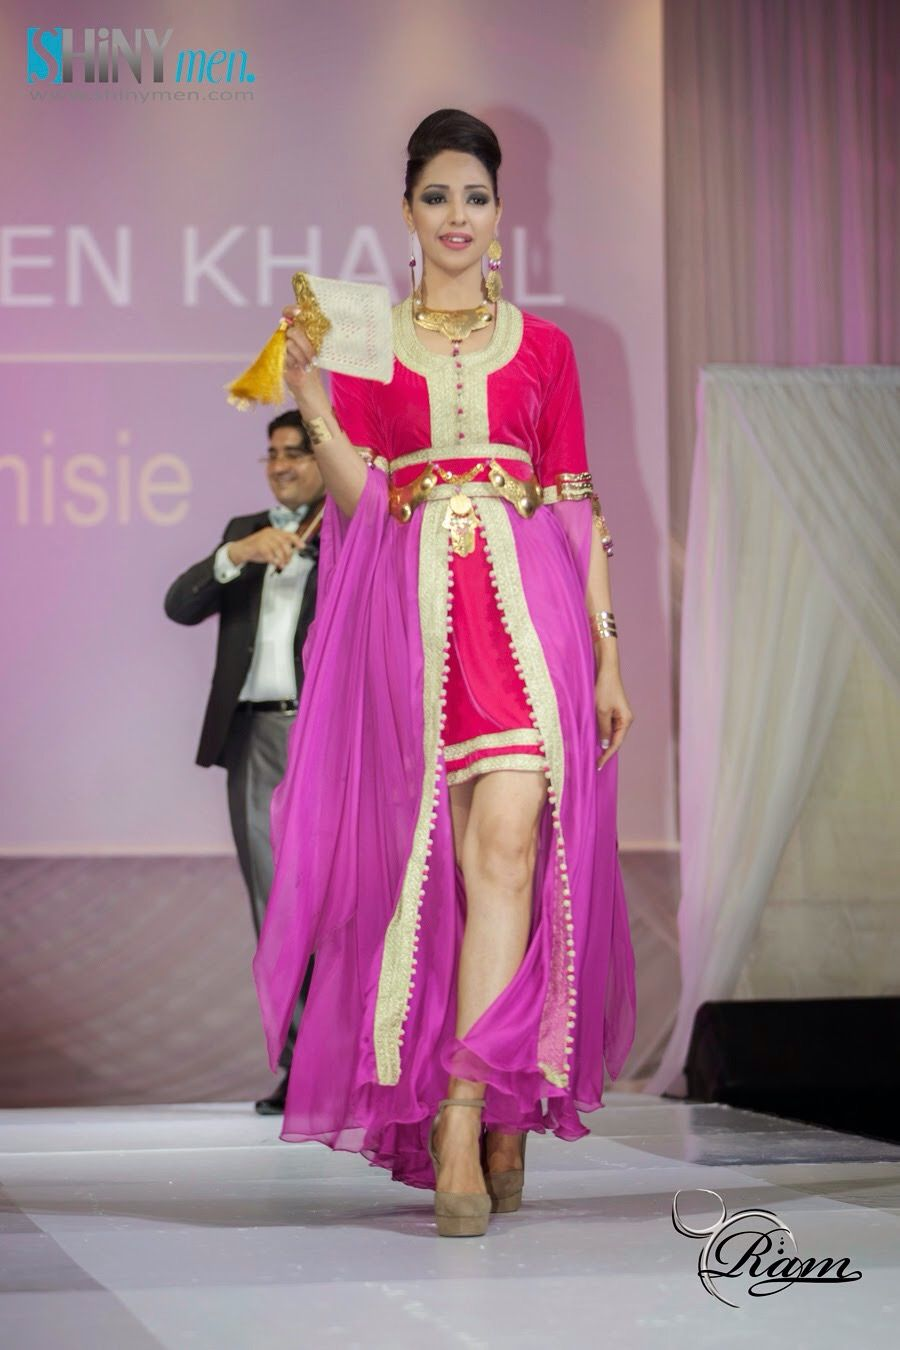 Caftan tunisien Anex broderie tun… Habits traditionnels